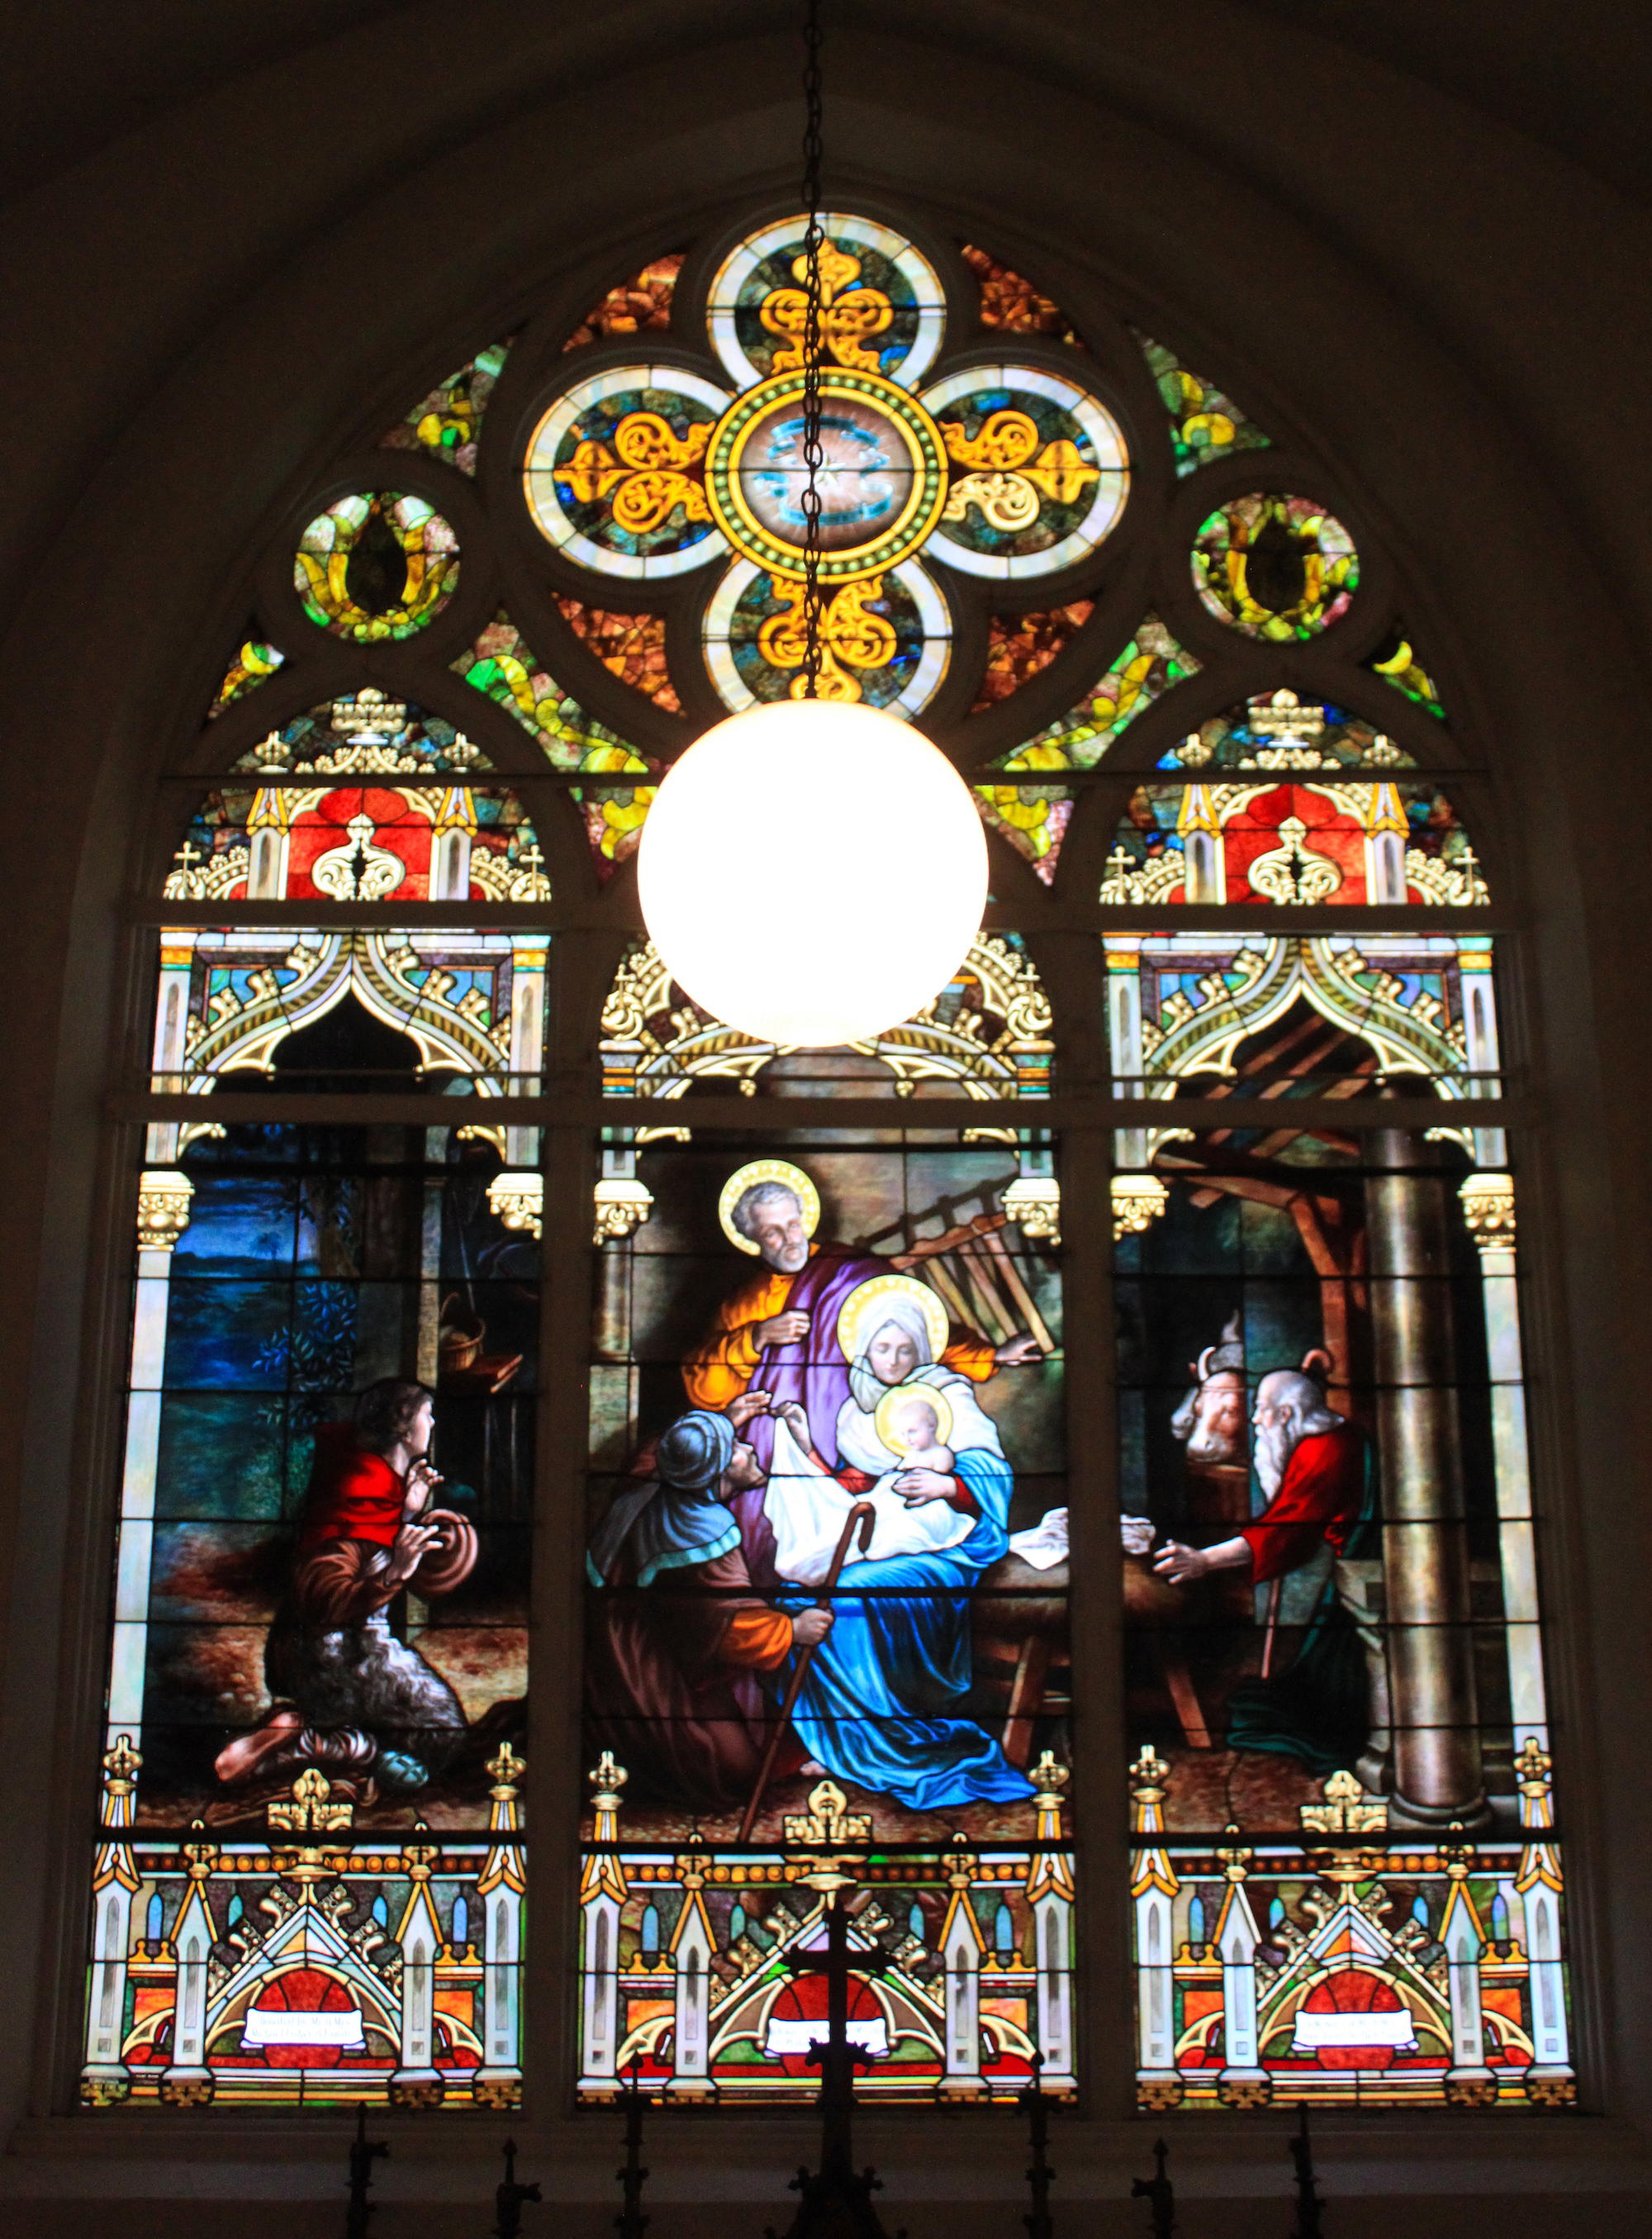 The stained glass Nativity scene at St. Patrick's is likely the work of Milwaukee-based artist Karl Riemann